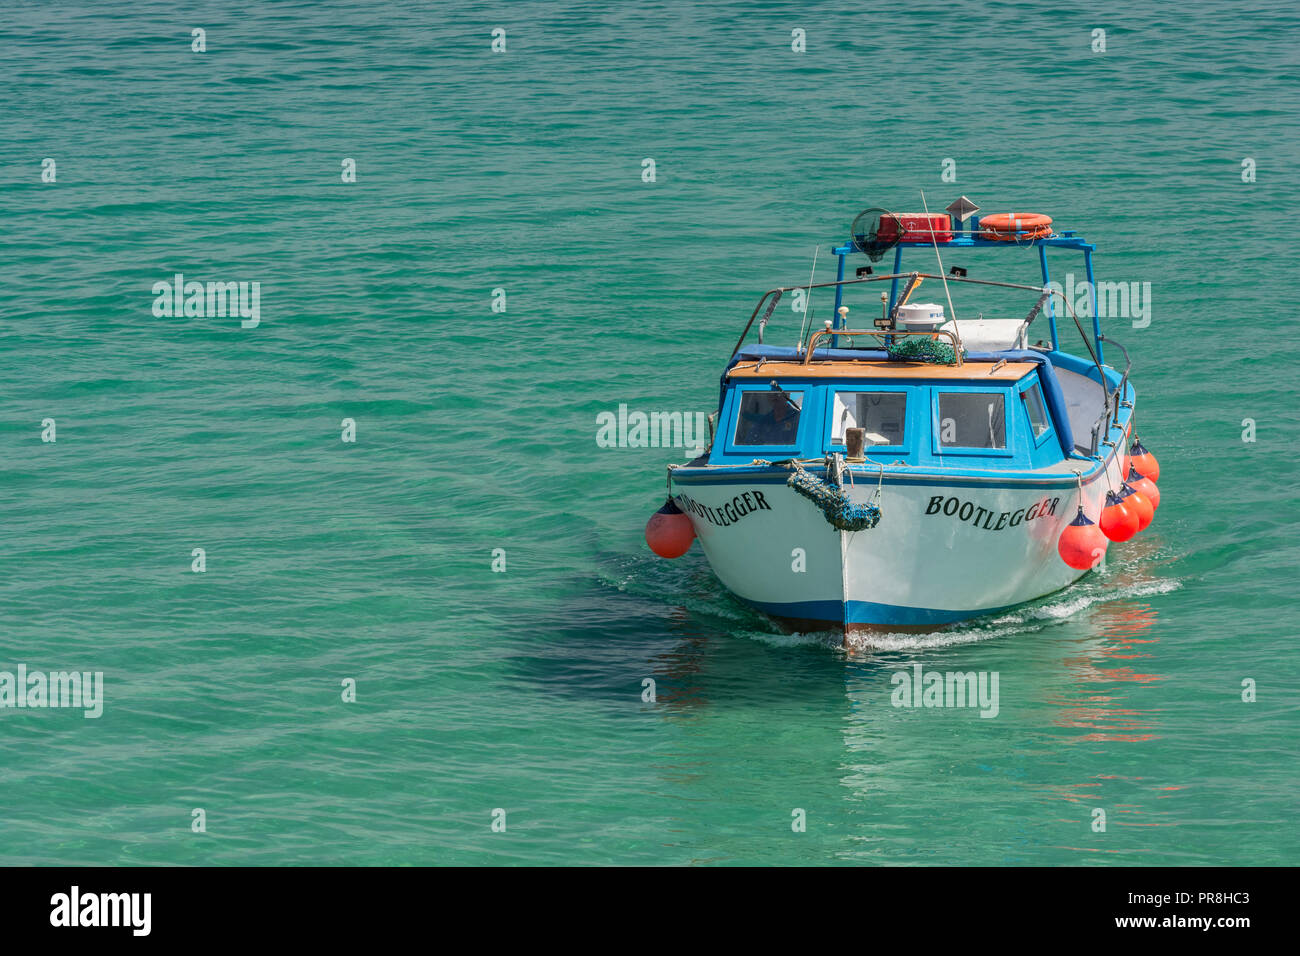 Harbour scenes around Newquay, Cornwal. Staycation UK concept.l - Stock Image